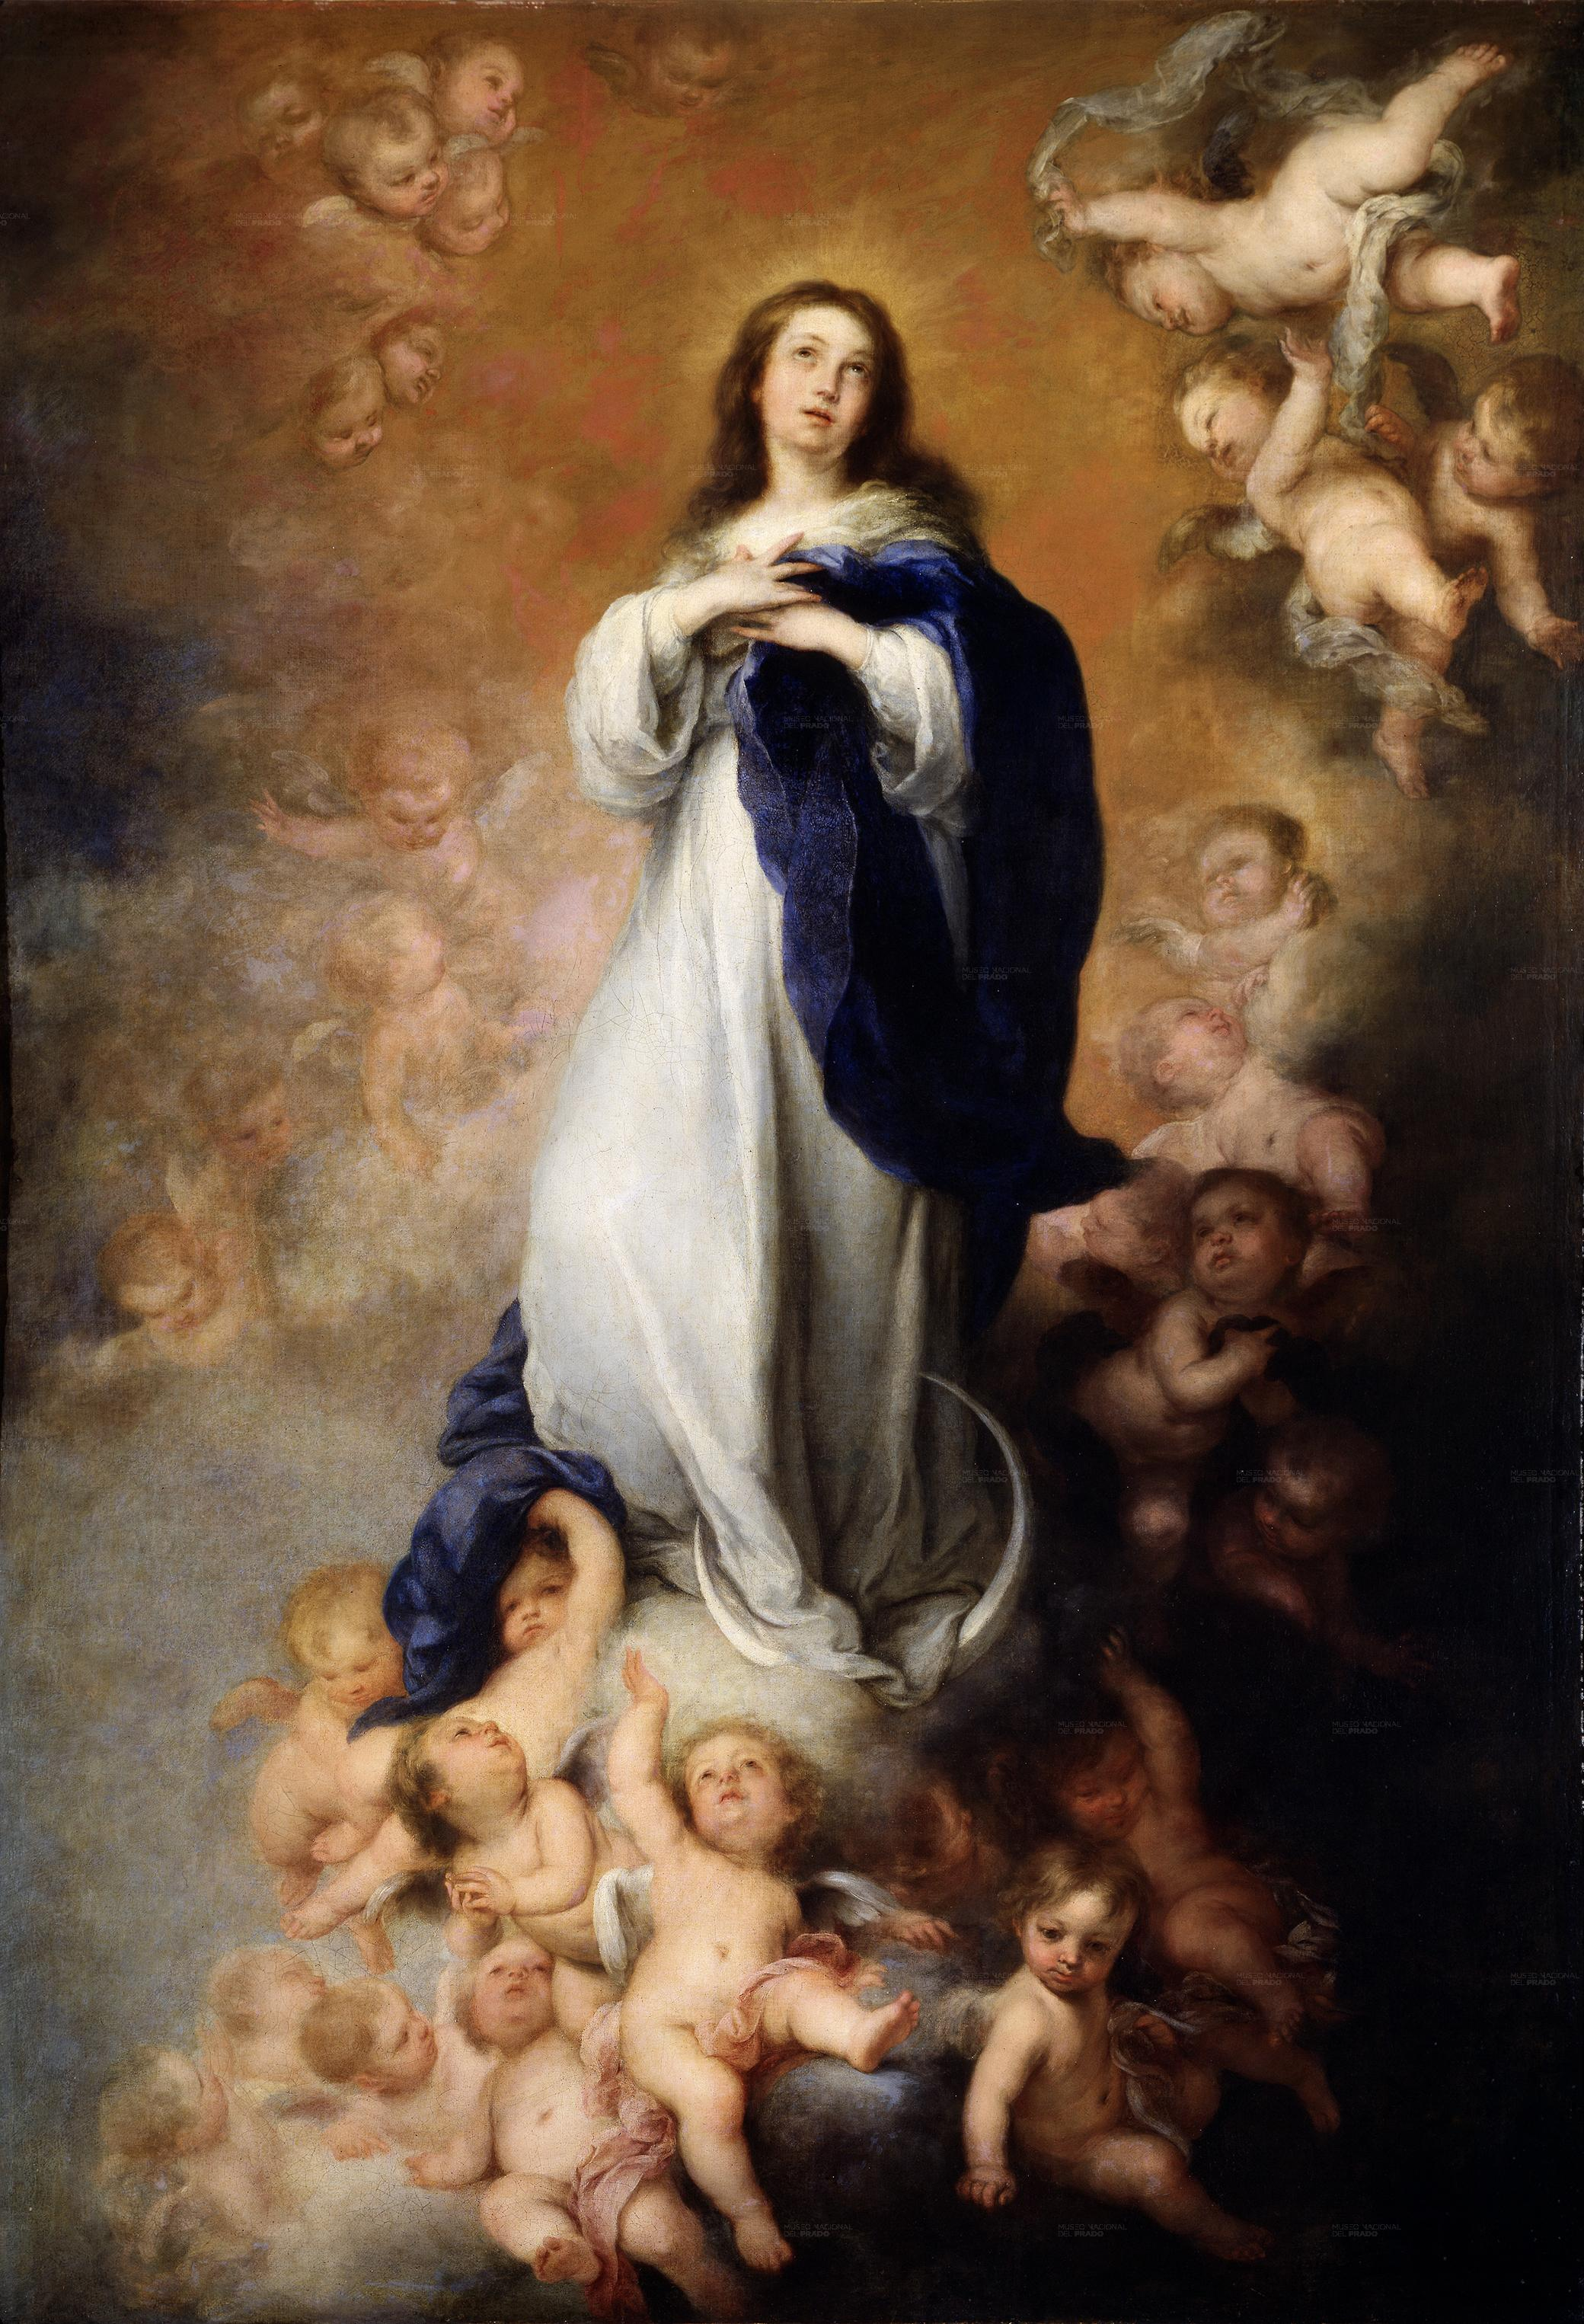 http://monsignorepuenteochoa.files.wordpress.com/2009/12/murillo_immaculate_conception.jpg